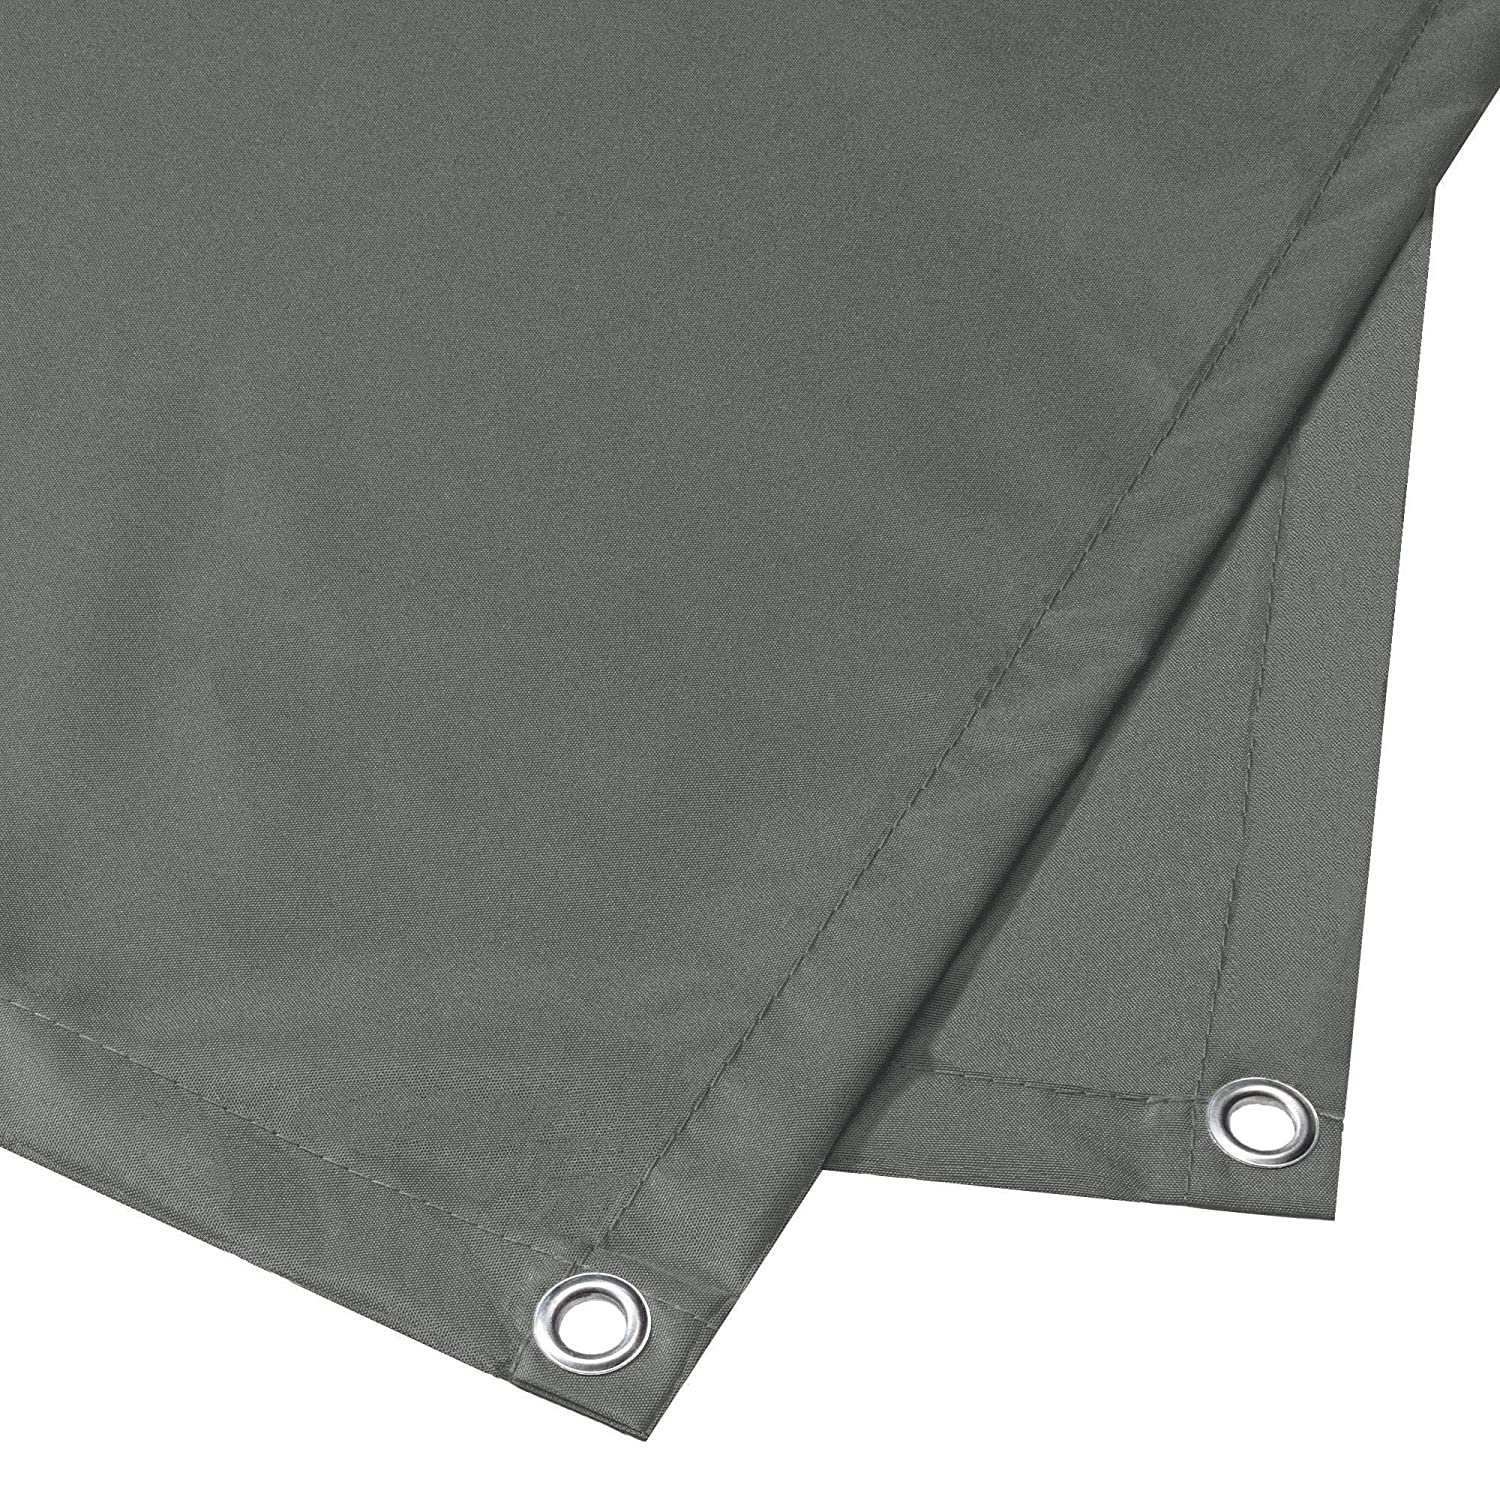 CelinaSun Privacy Screen 0.9 x 5 m Balcony Cover with Cable Ties Opaque Covering Panel